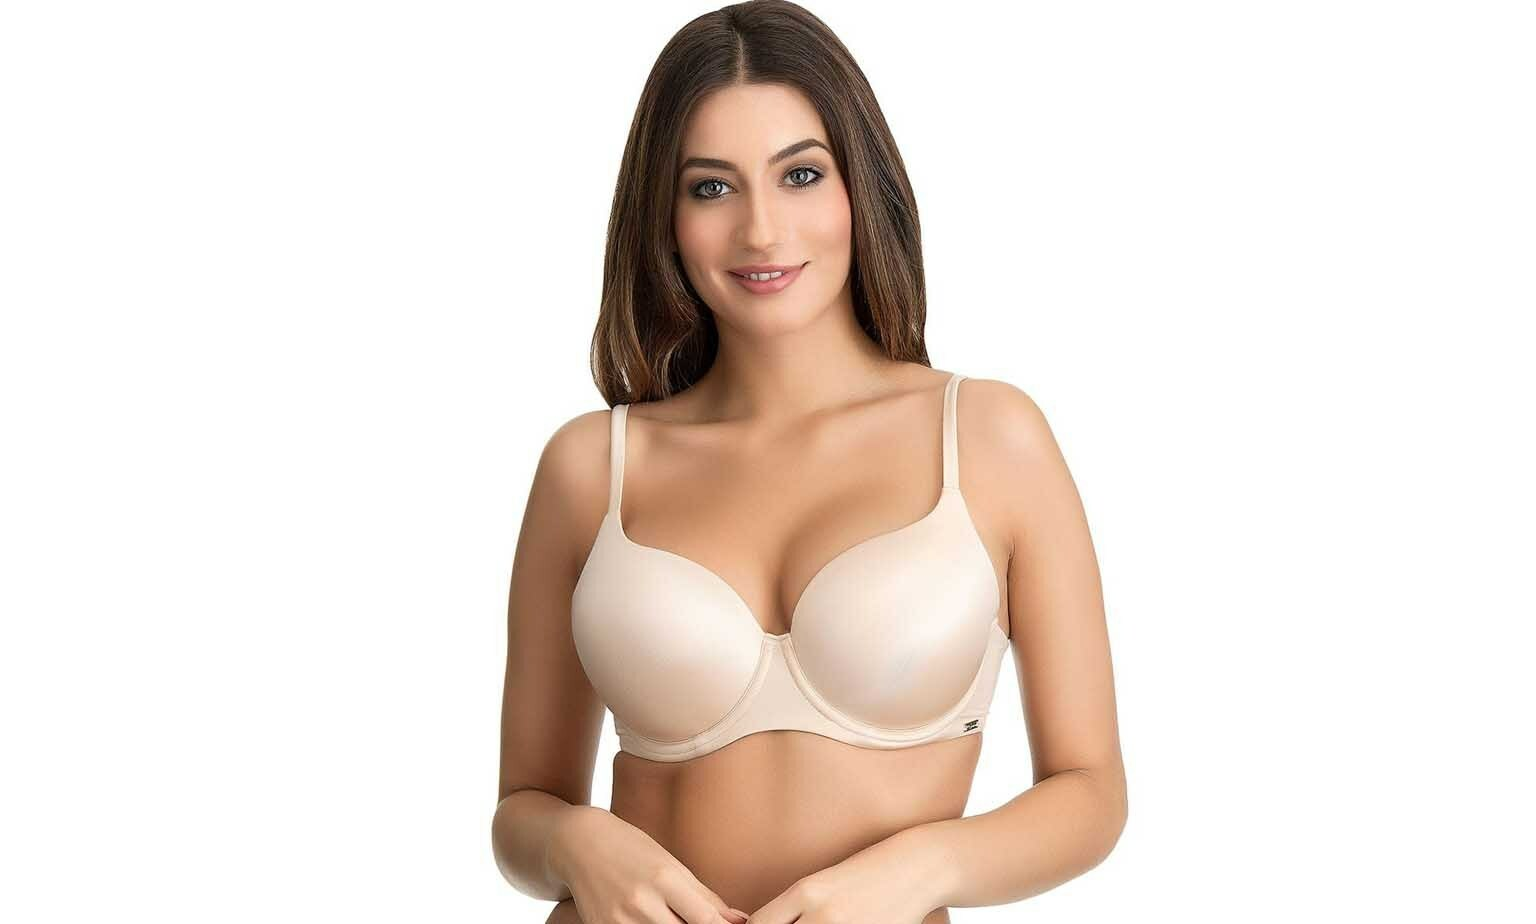 Four Bras for £20